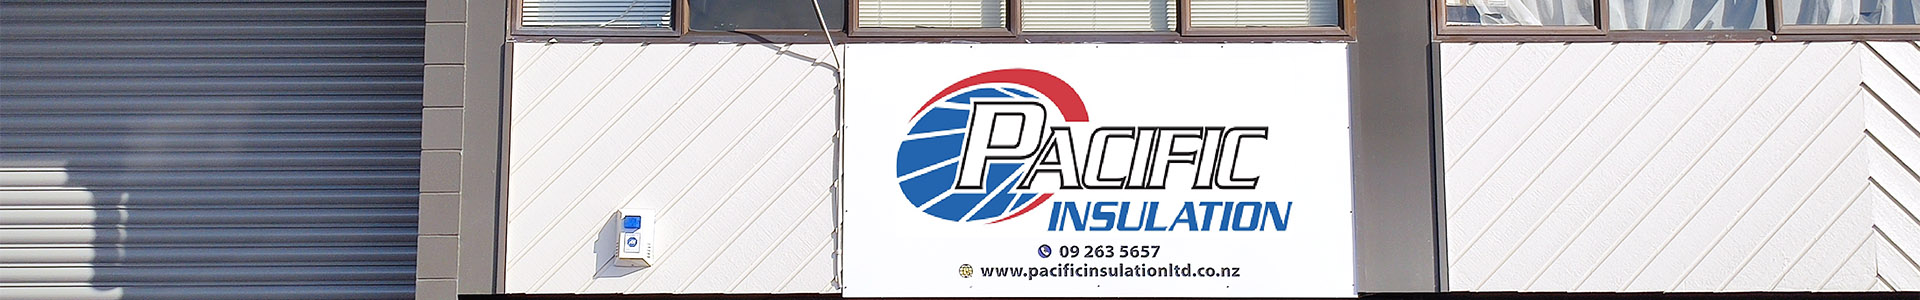 Pacific Insulation contact us